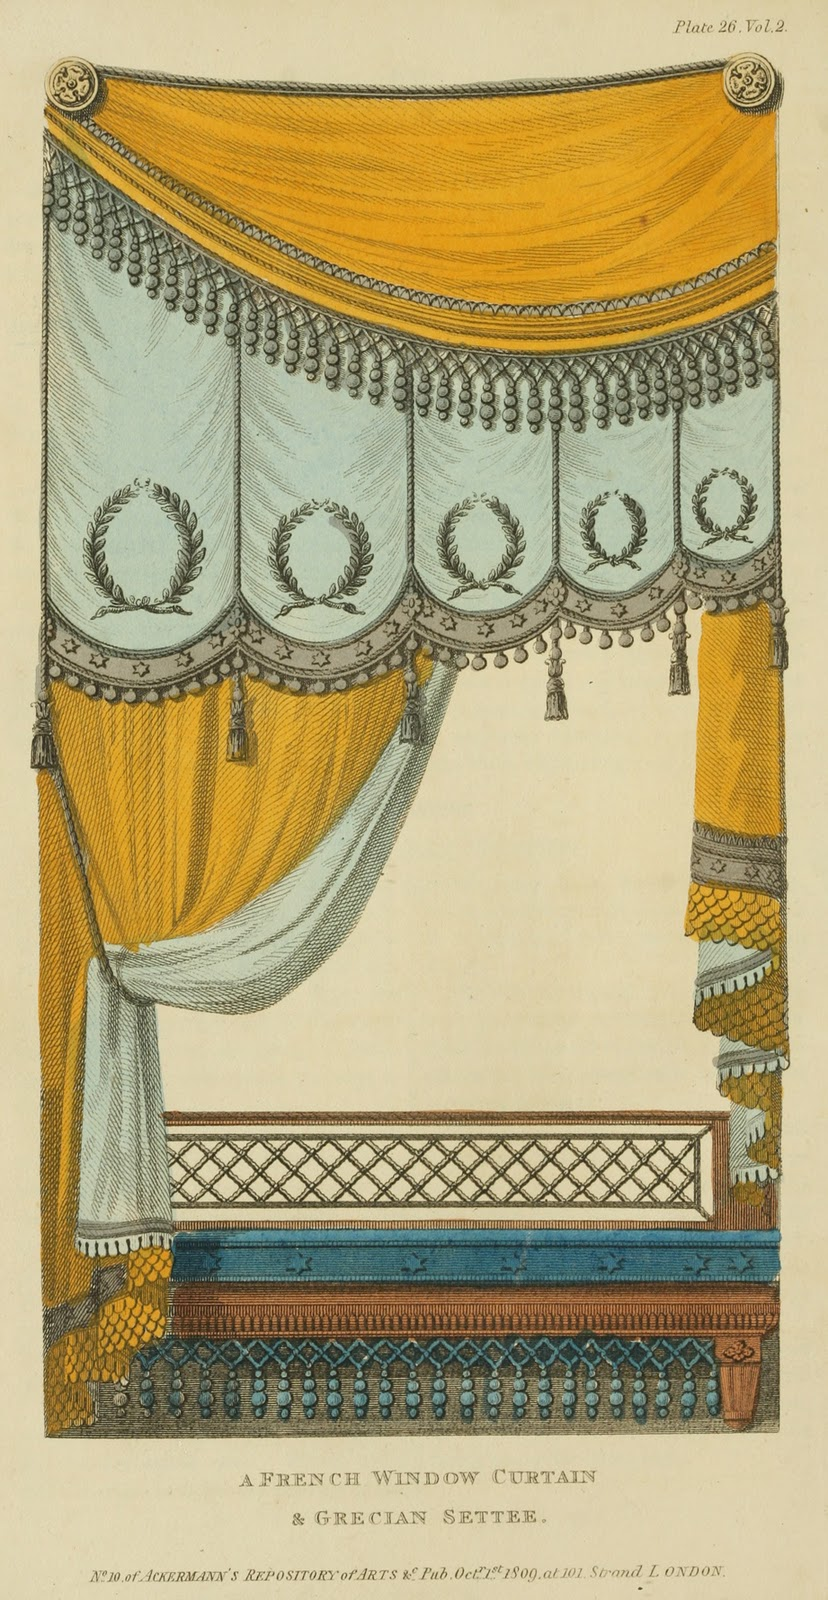 """French window curtains and Grecian Settee."" Plate 26. Volume 2. 1809."